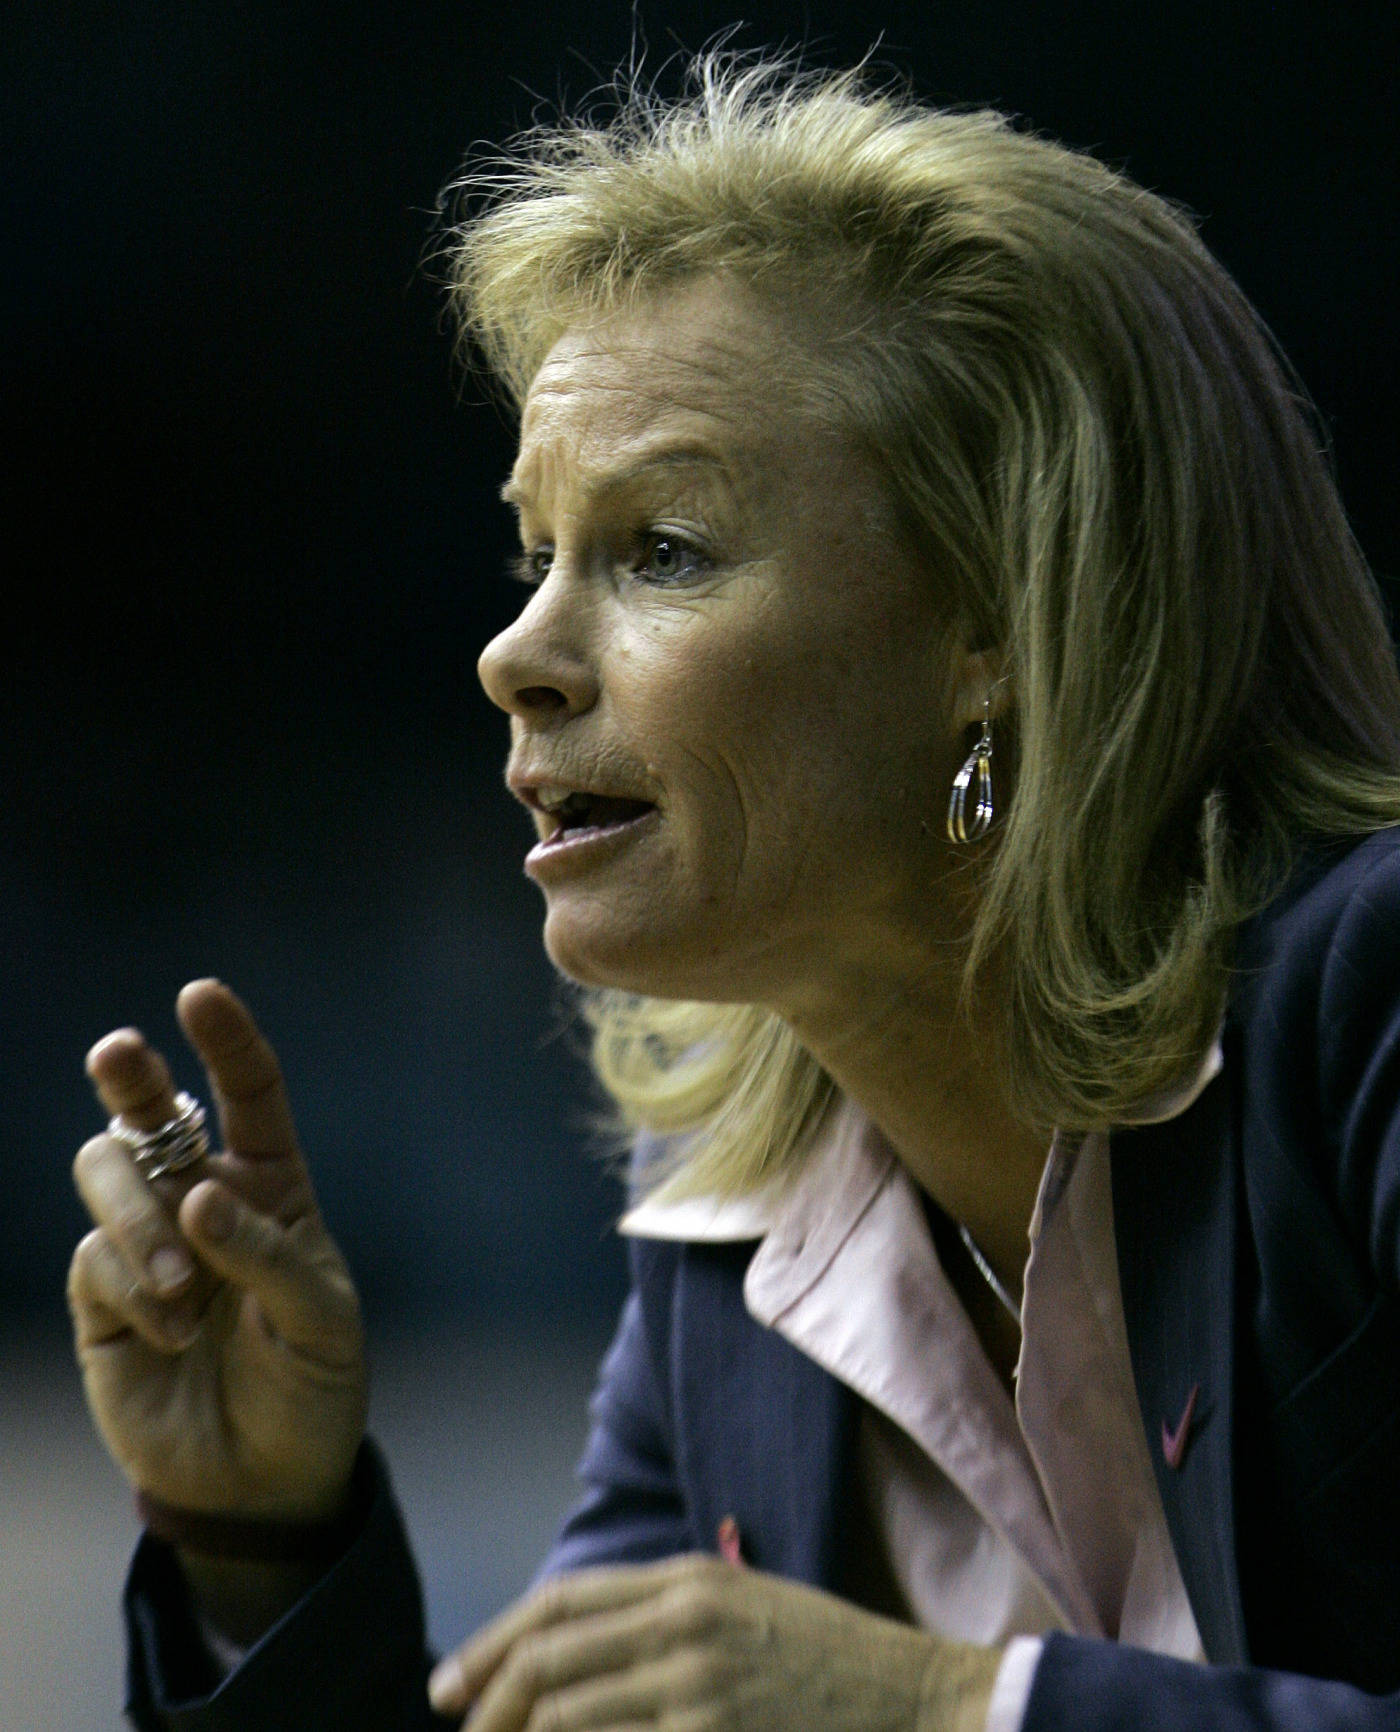 Florida State coach Sue Semrau directs her team during the first half of a college basketball game against North Carolina in Chapel Hill, N.C., Sunday, Feb. 17, 2008. (AP Photo/Gerry Broome)